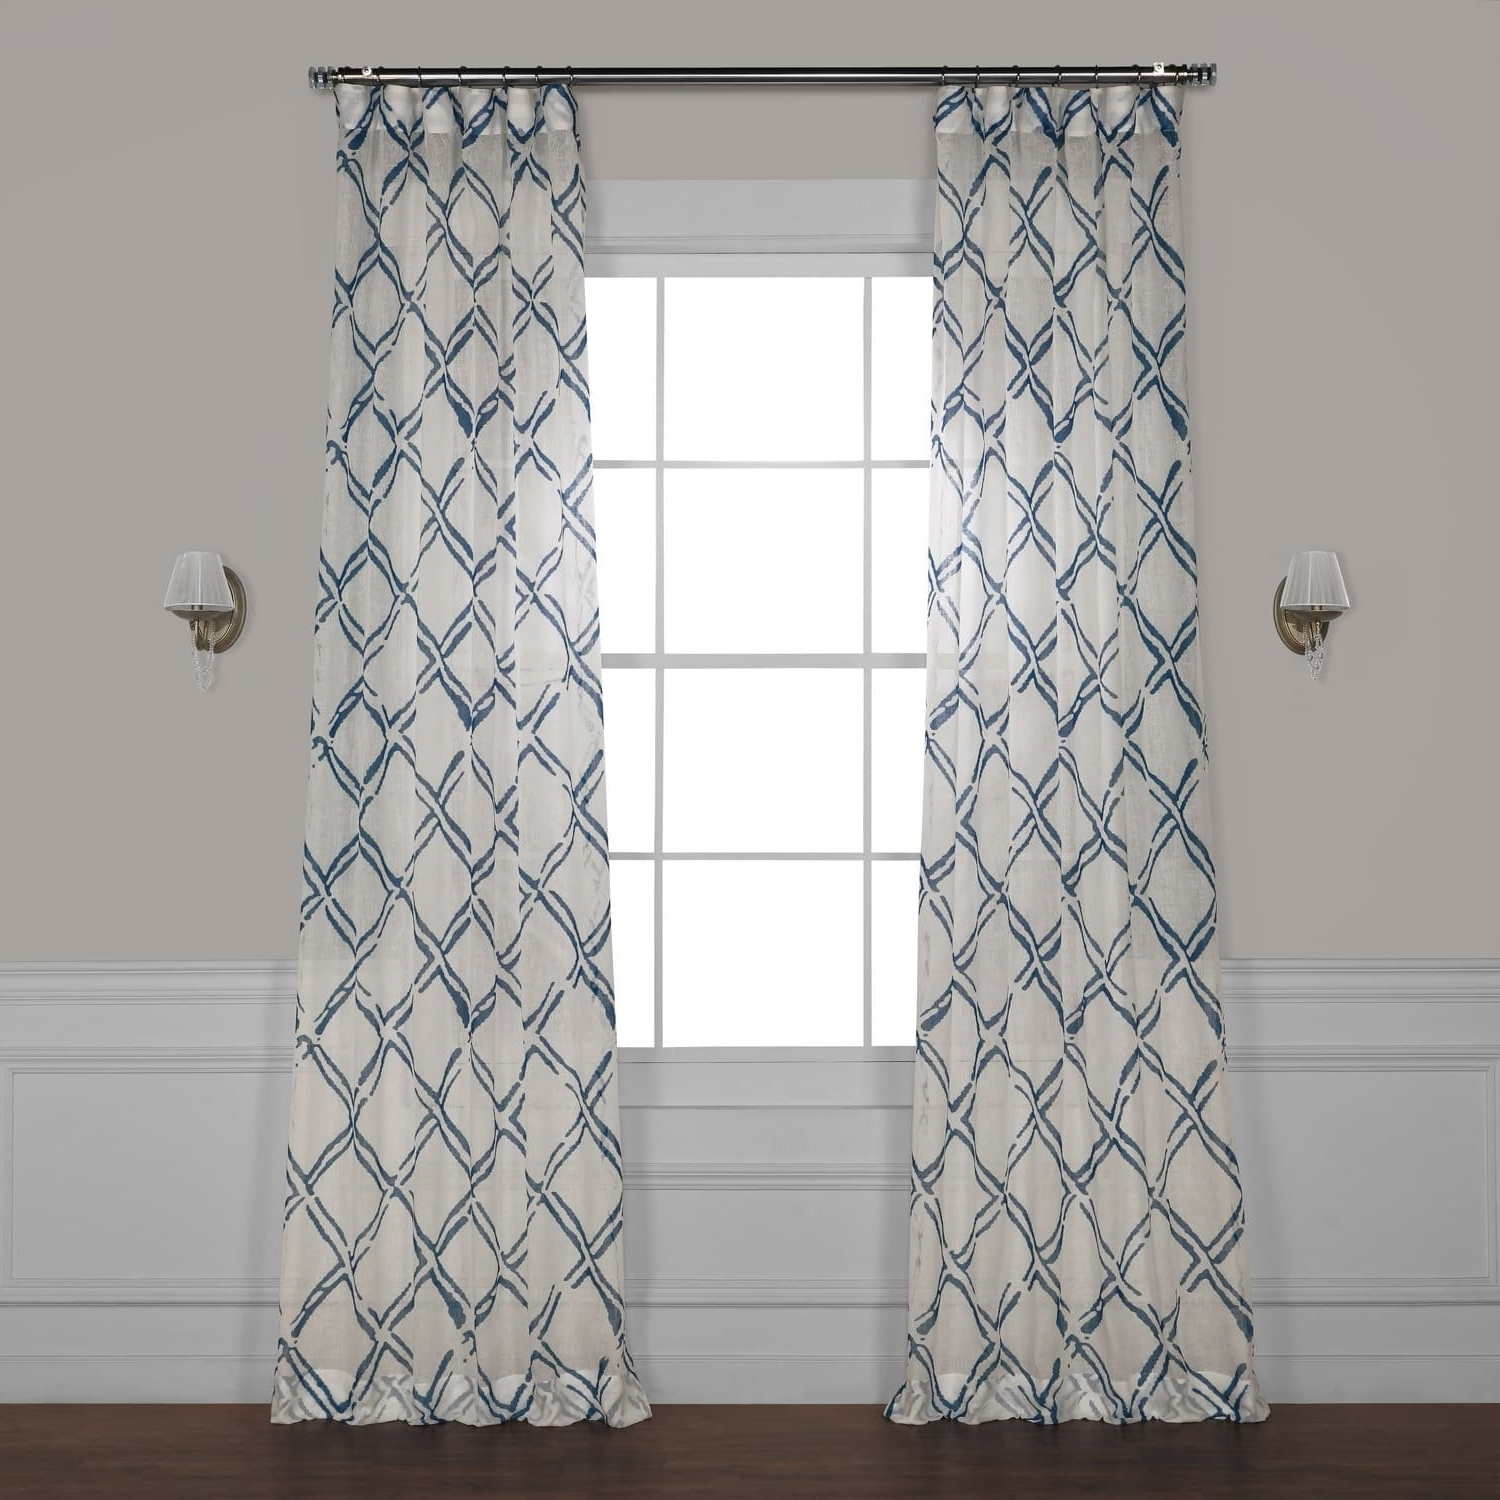 Widely Used Grey Printed Curtain Panels Within Exclusive Fabrics Normandy Grey Printed Sheer Curtain Panel (View 17 of 20)